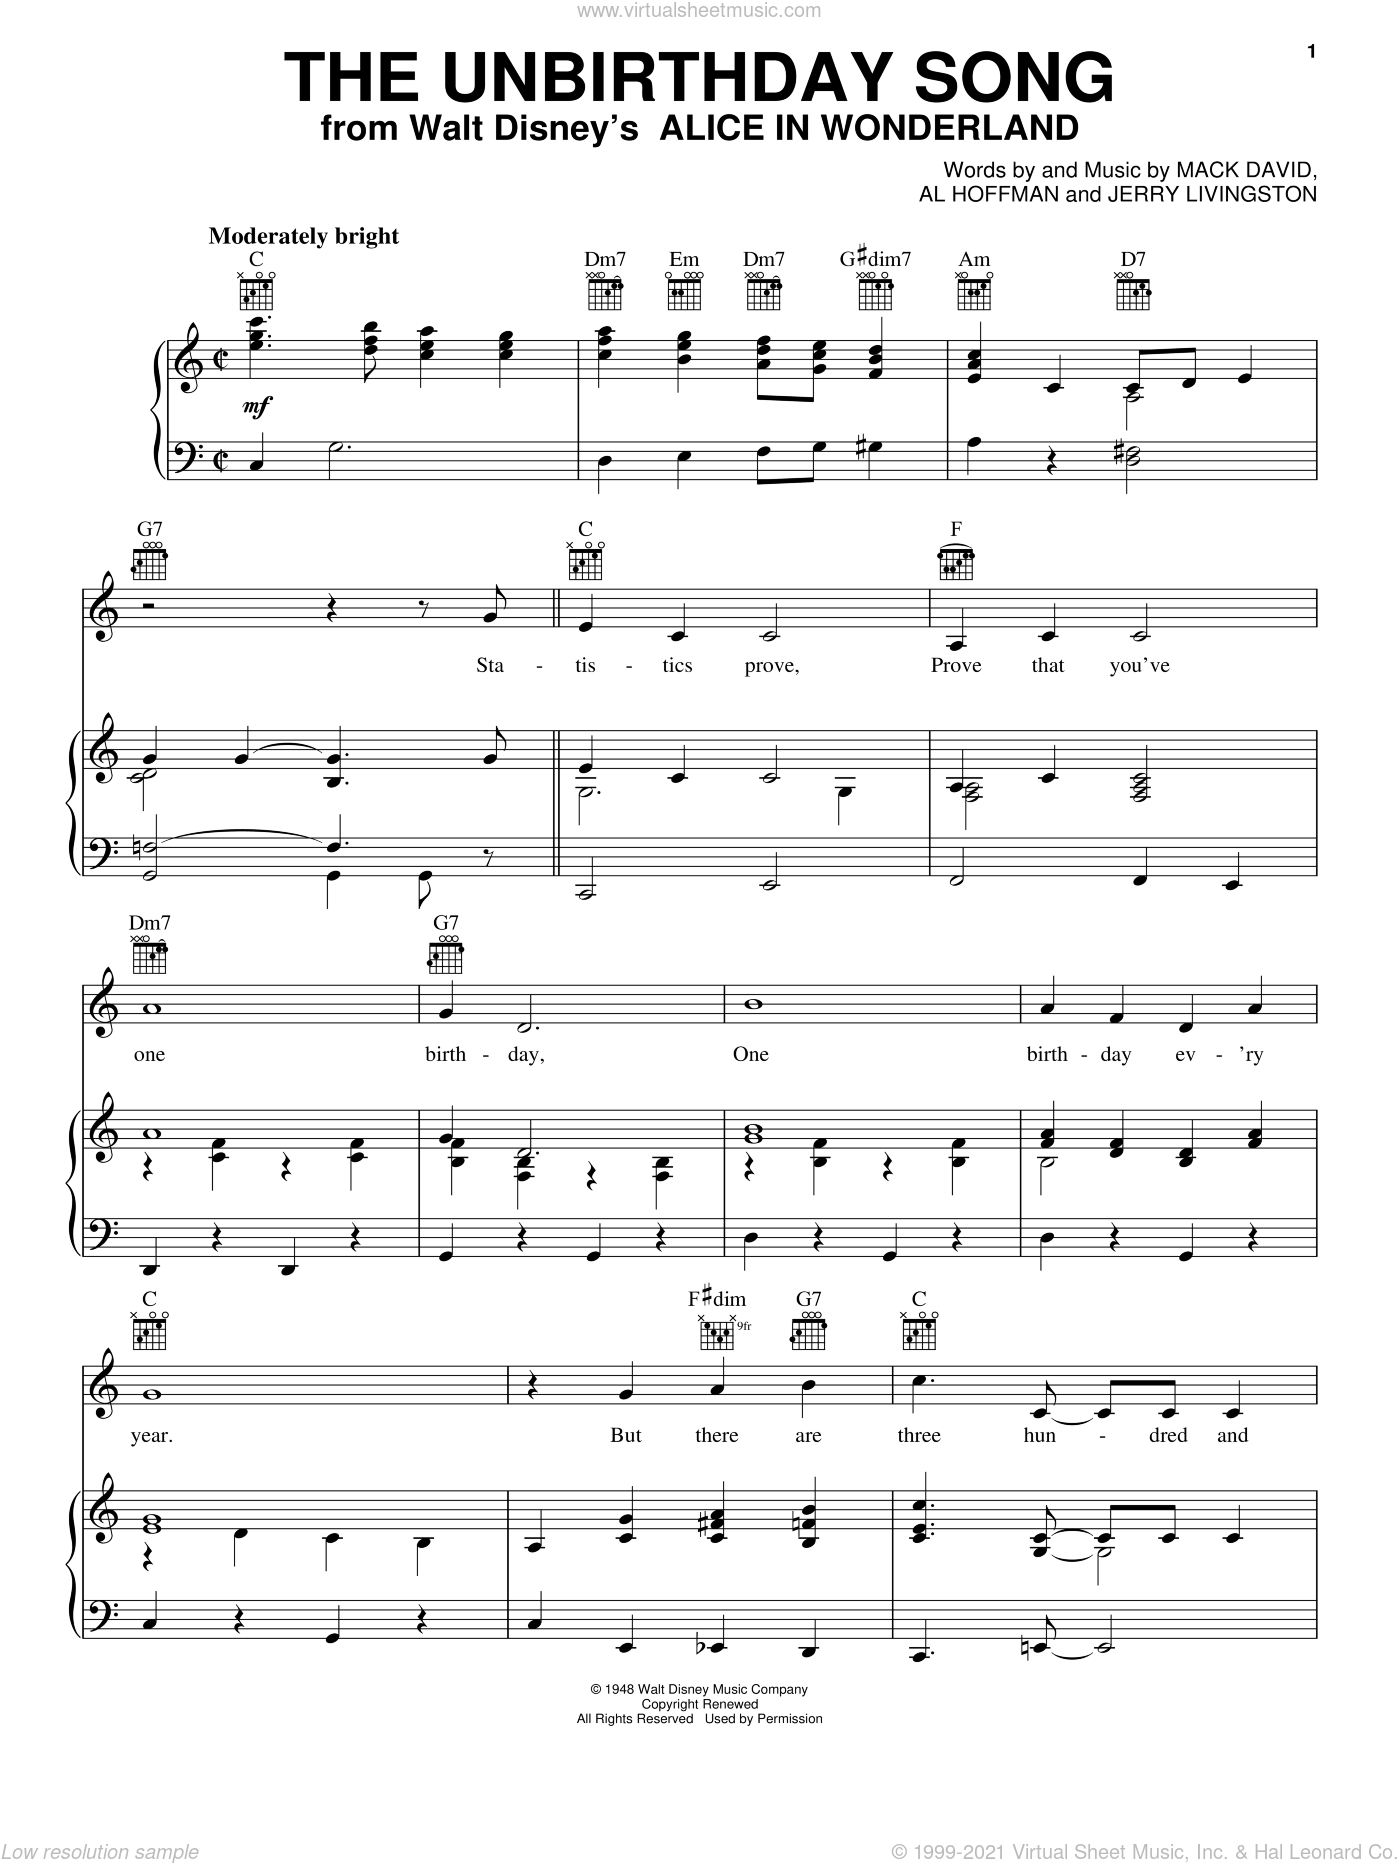 The Unbirthday Song sheet music for voice, piano or guitar by Mack David